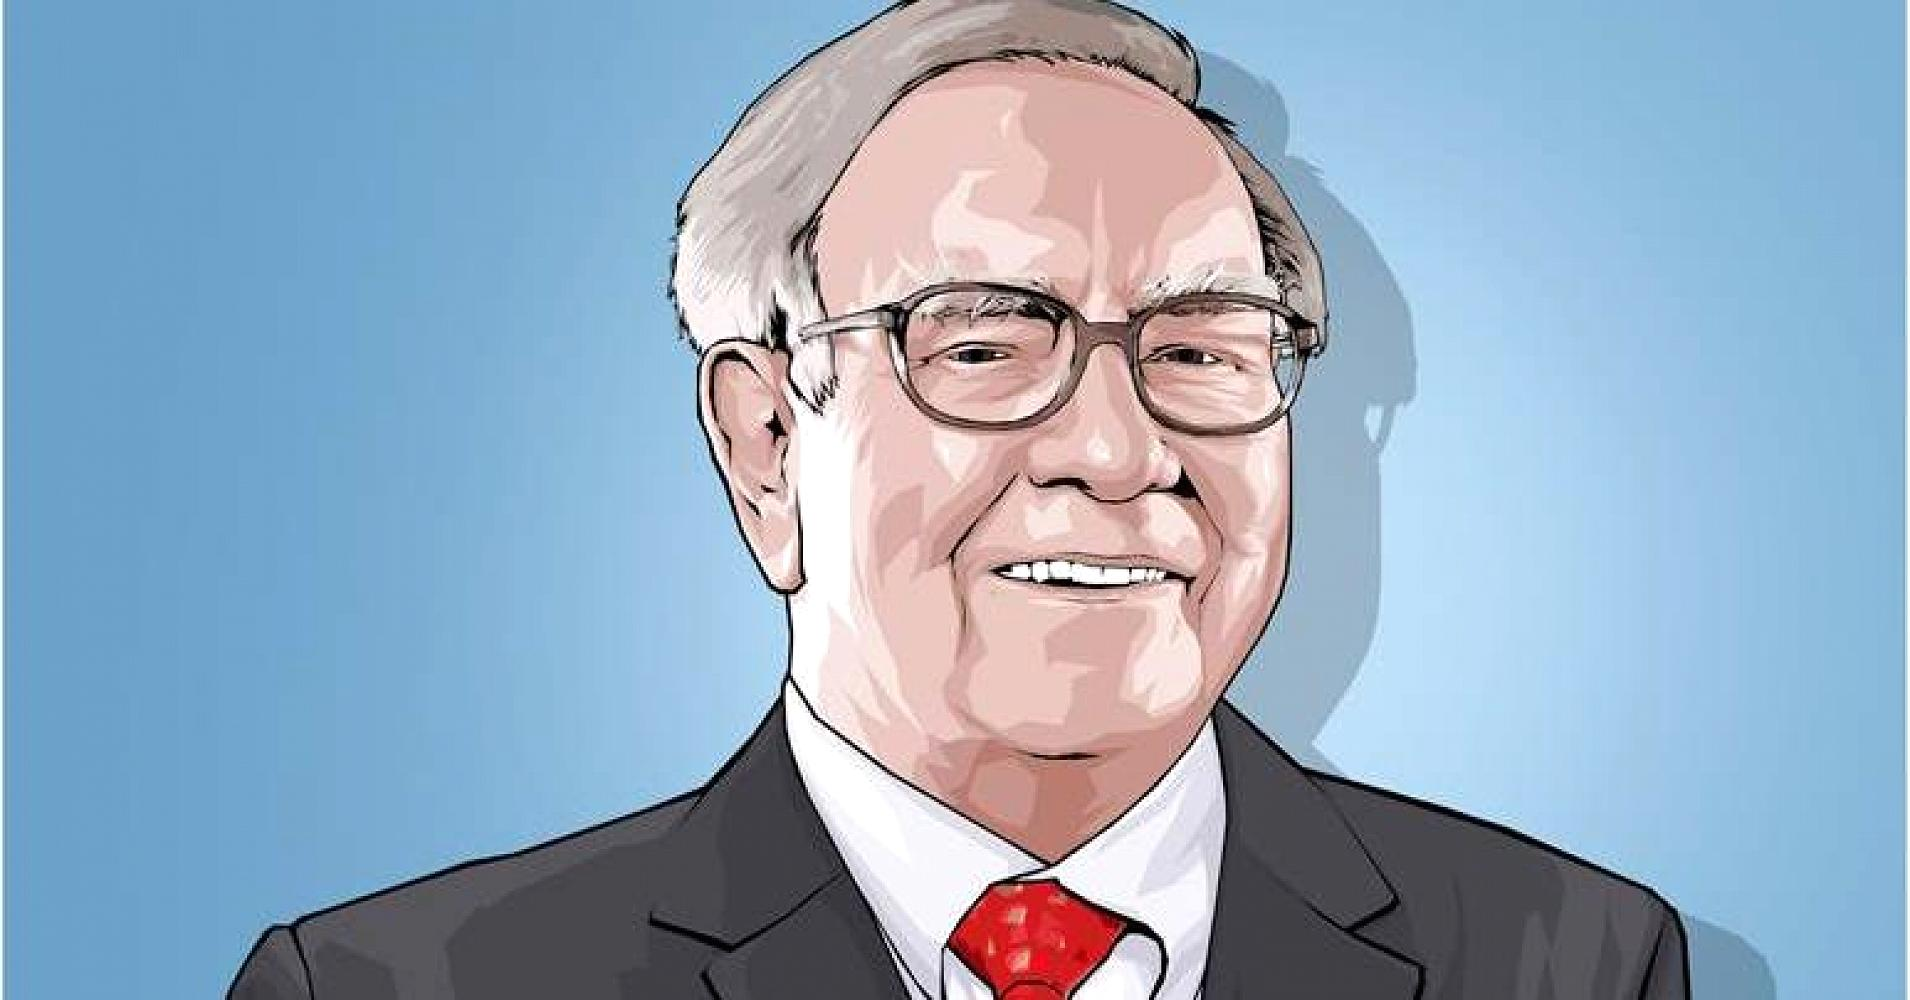 warren buffett is a renowned investor the ceo of berkshire hathaway and the third richest person in the world he has a net worth around 62 billion